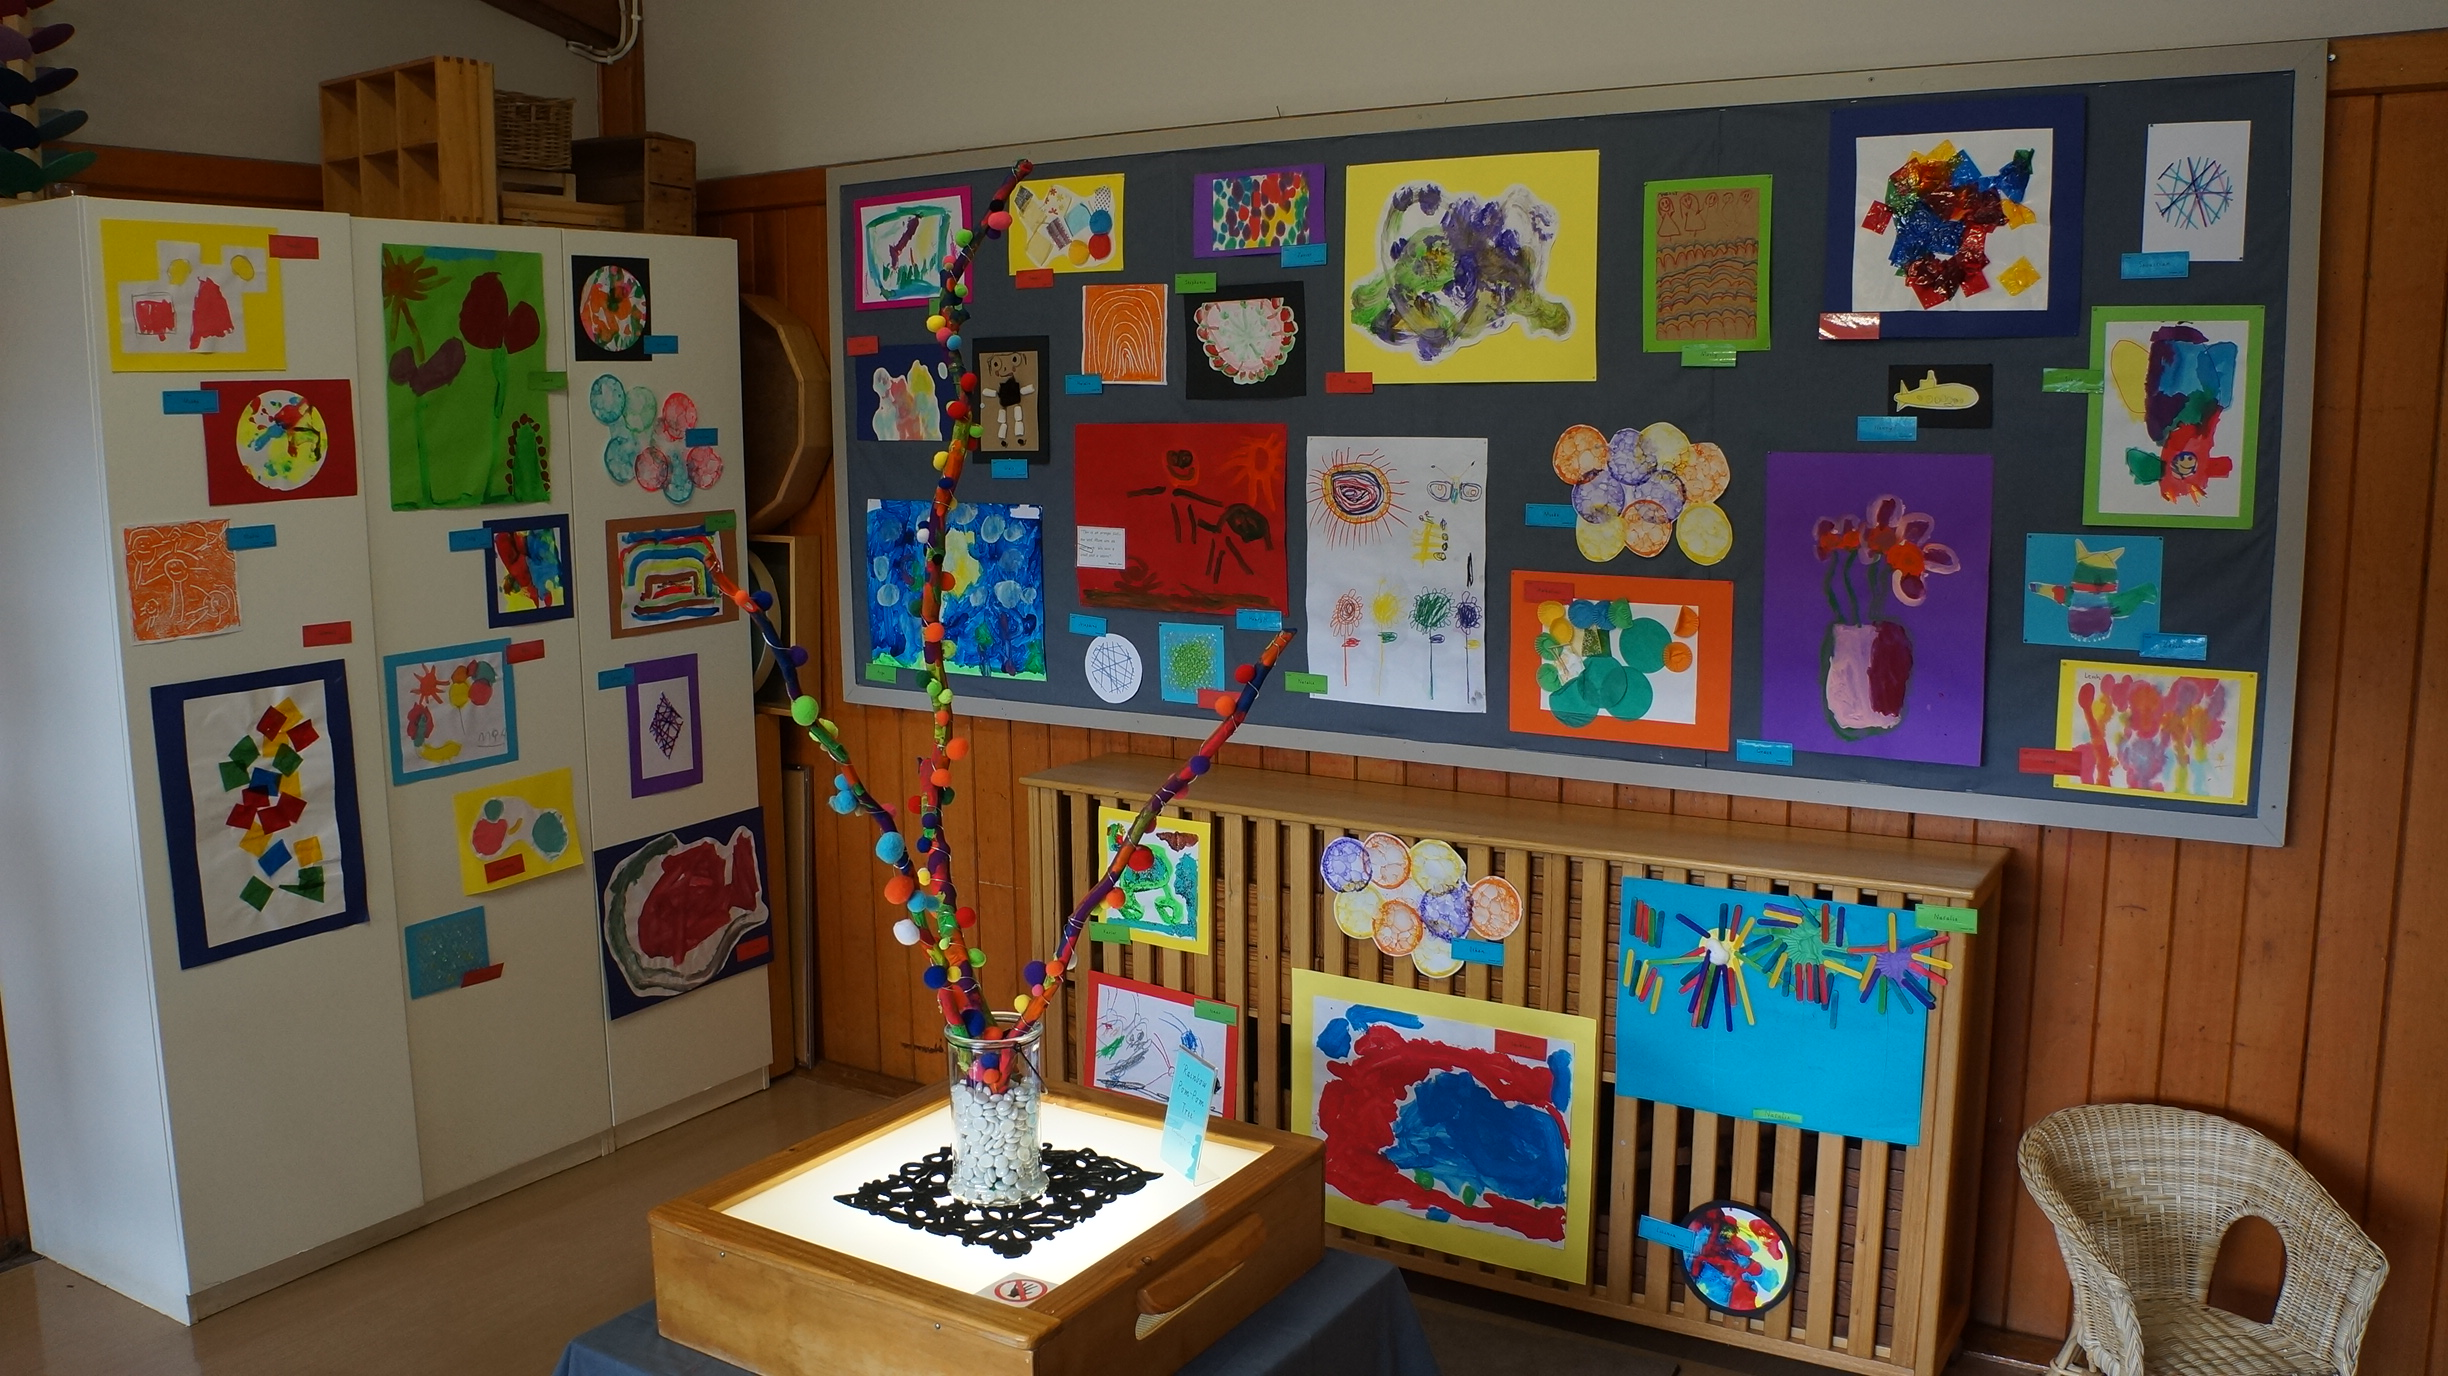 Some of the artwork on display